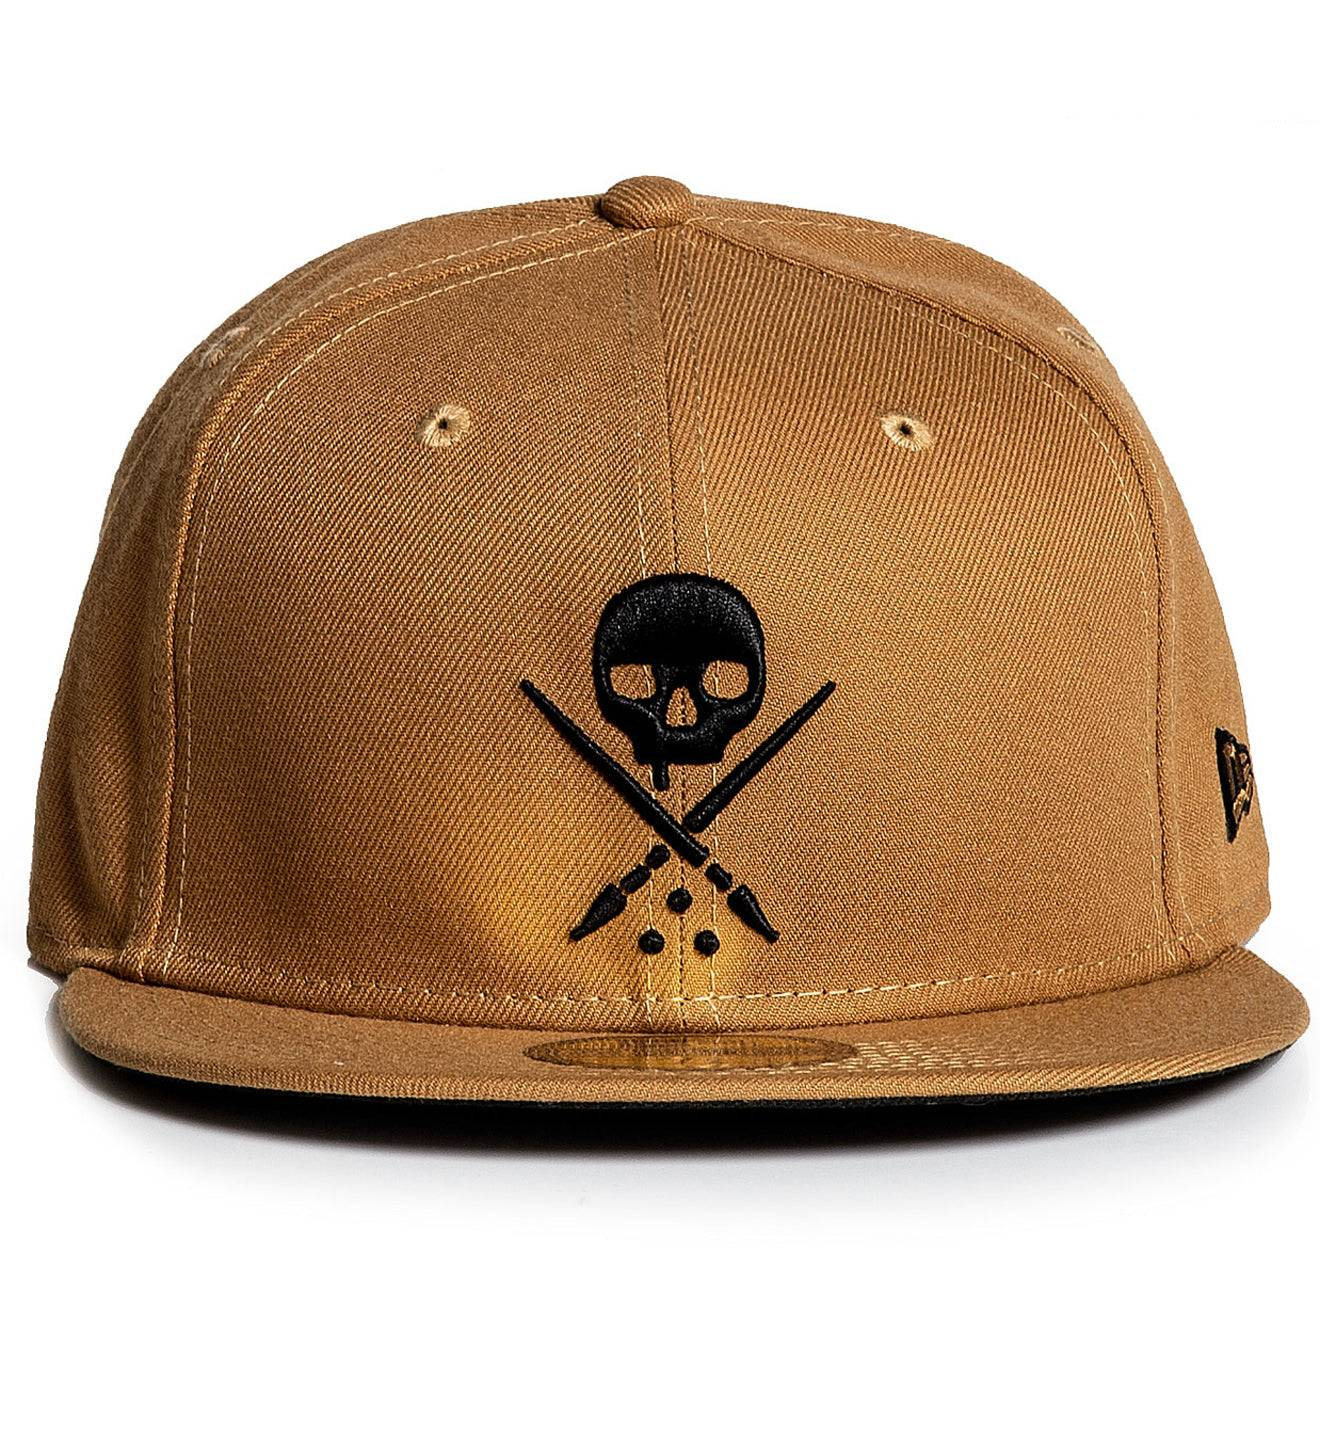 Mens Fitted Badge Wheat, WHEAT / 73/4